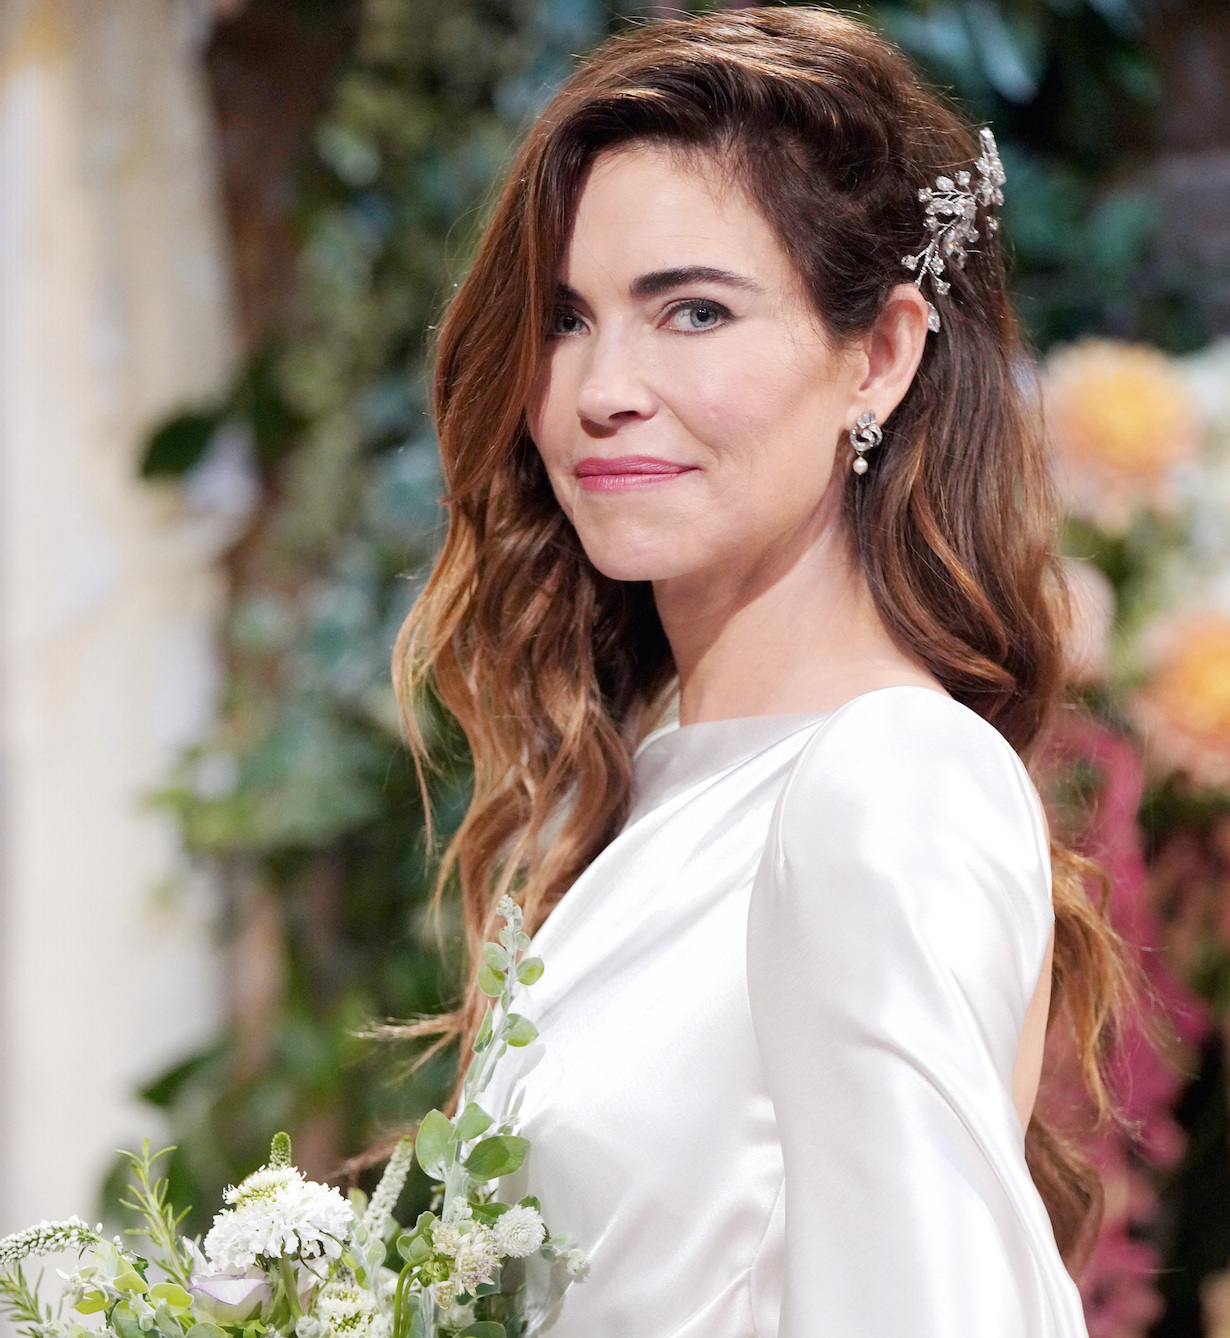 """Amelia Heinle""""The Young and the Restless"""" Set WeddingCBS television CityLos Angeles09/03/21© Howard Wise/jpistudios.com310-657-9661"""